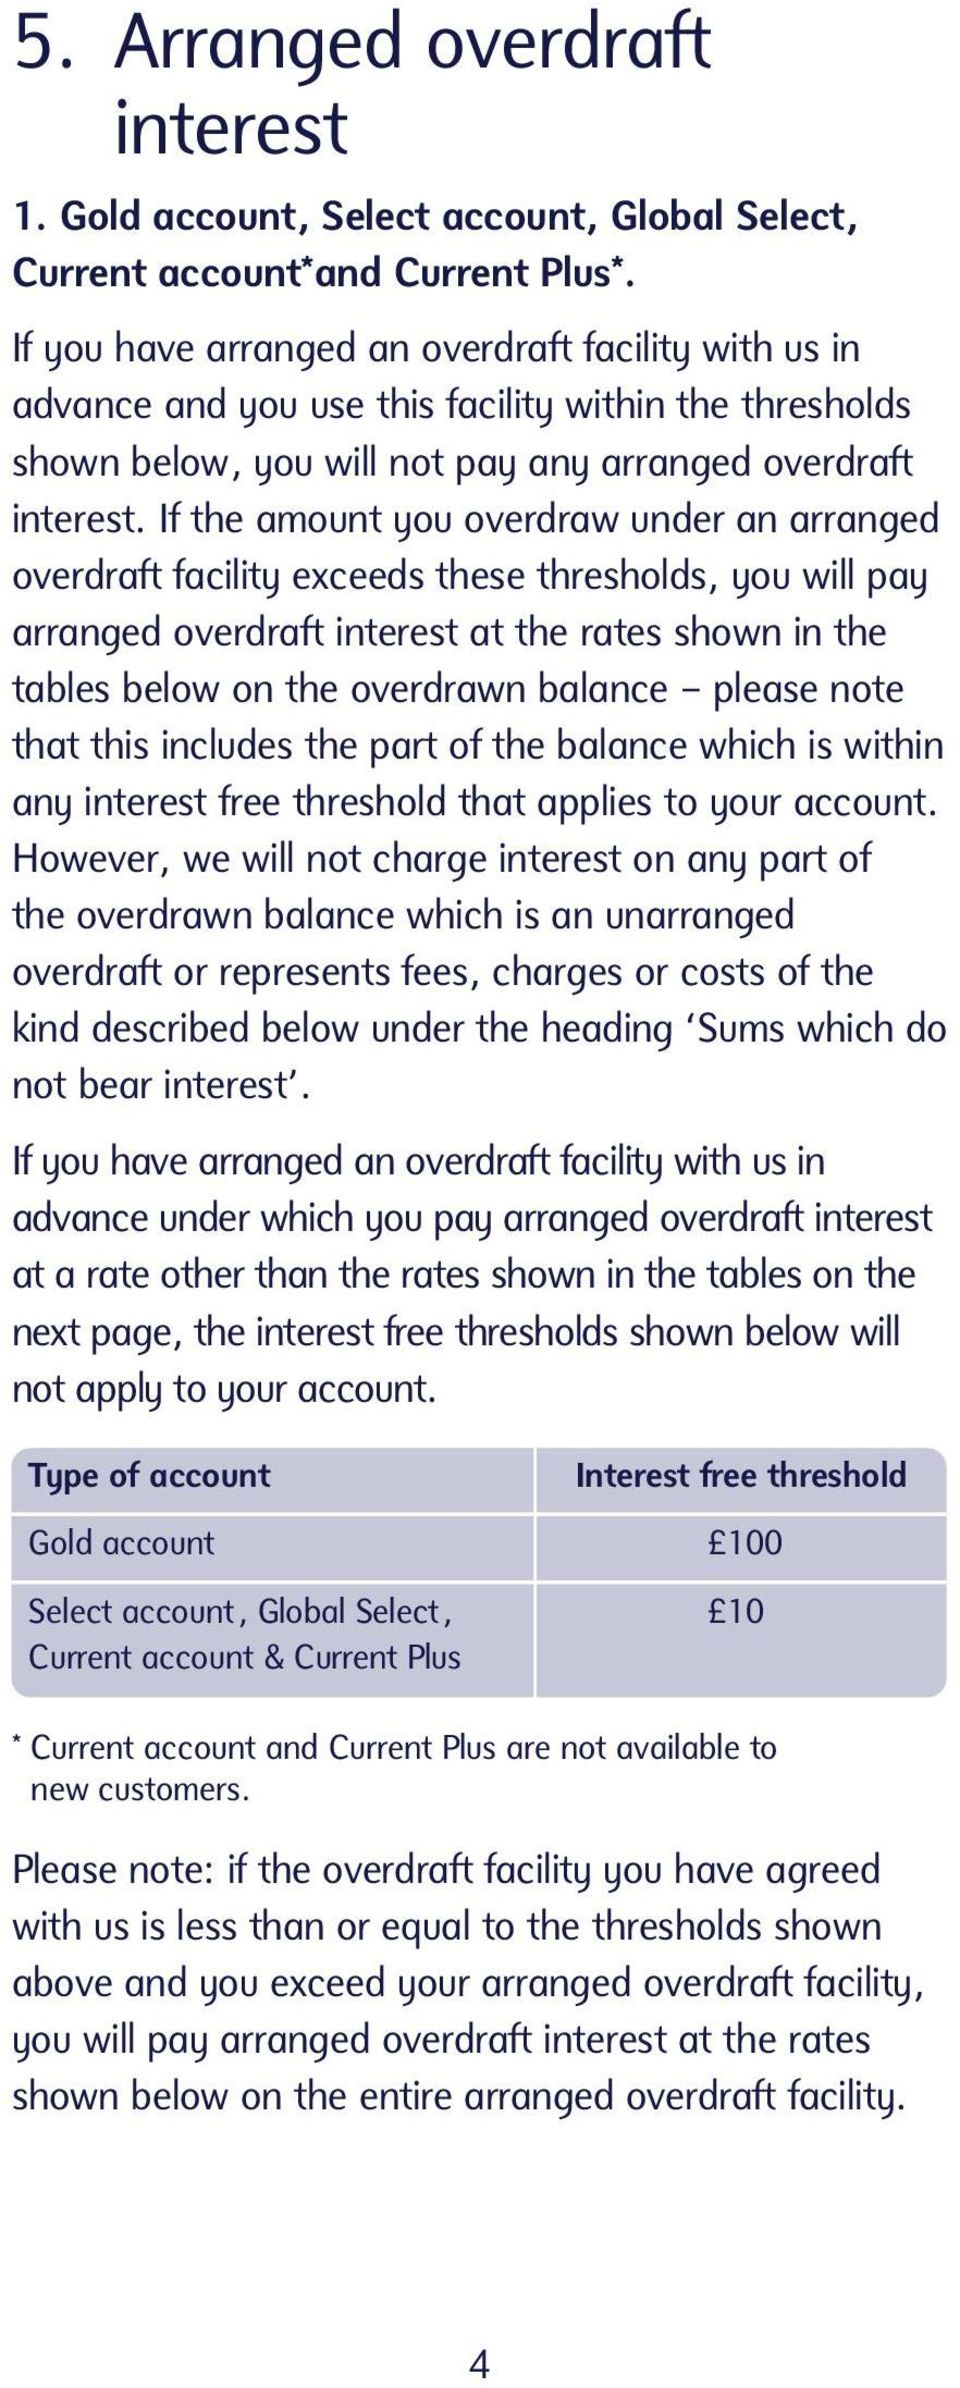 If the amount you overdraw under an arranged overdraft facility exceeds these thresholds, you will pay arranged overdraft interest at the rates shown in the tables below on the overdrawn balance